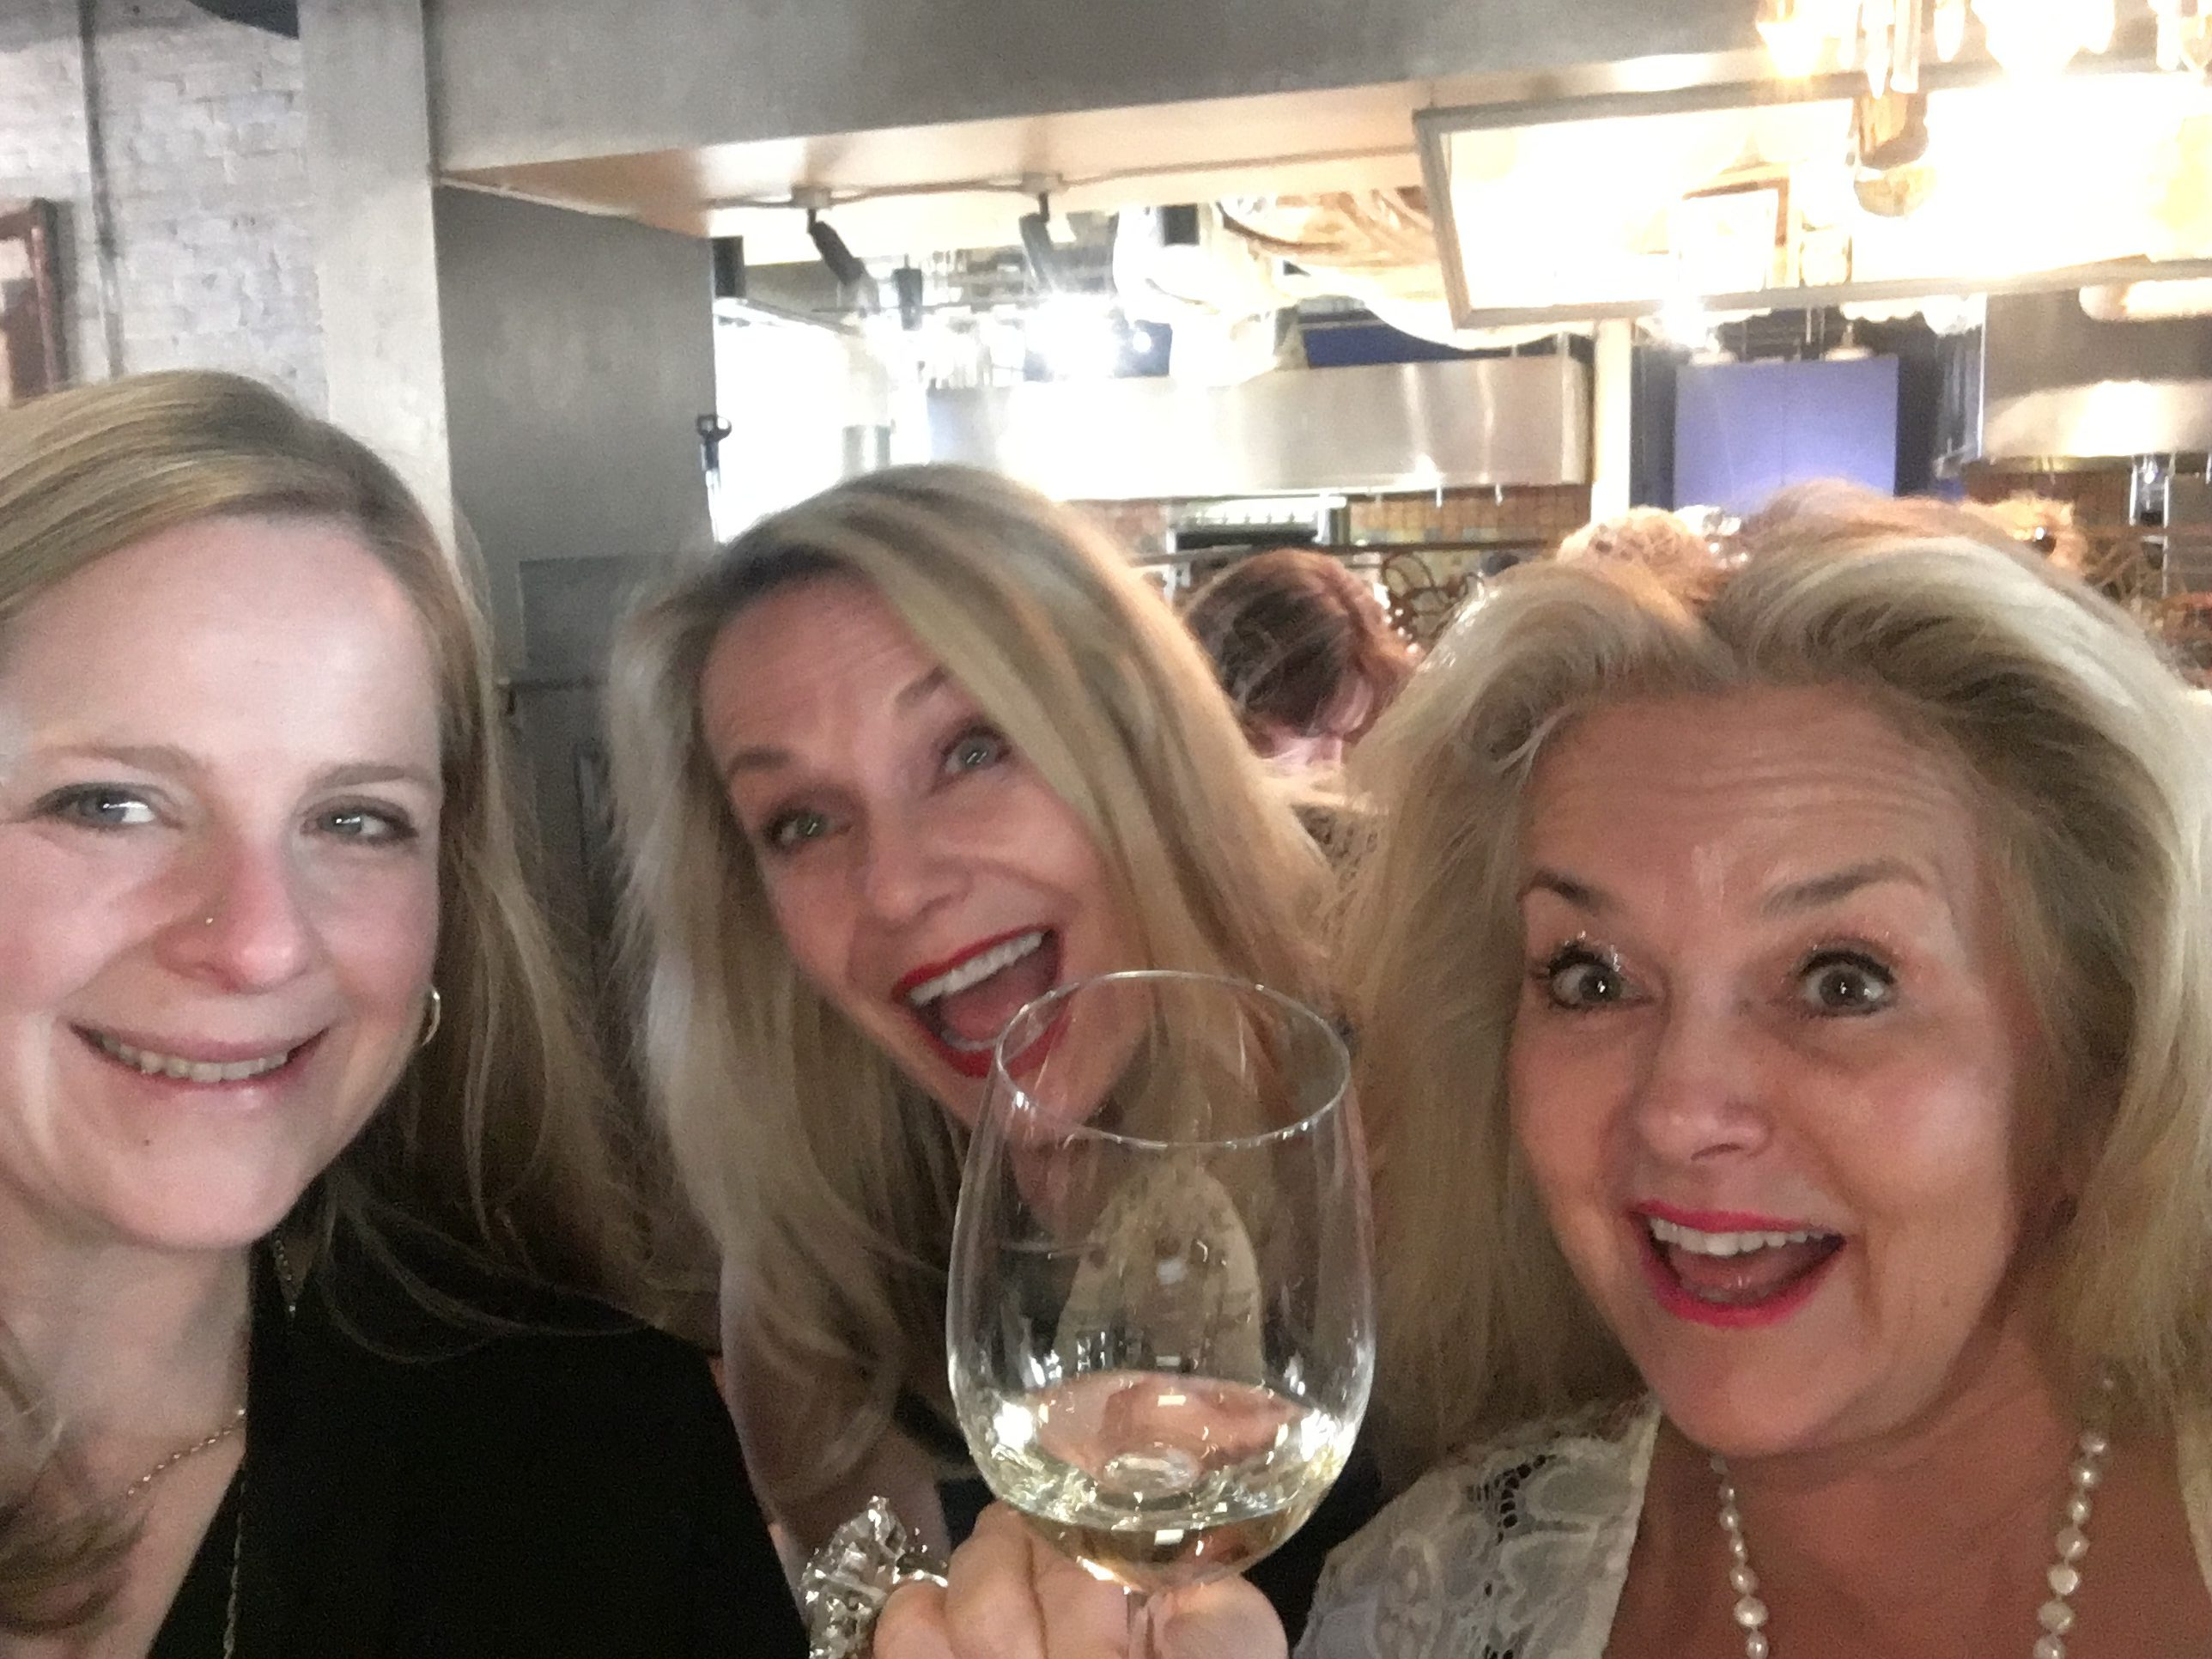 Selfie time with Megan Schofield, winemaker Robert Monday Winery! We had a blast! Adieu until we meet again!